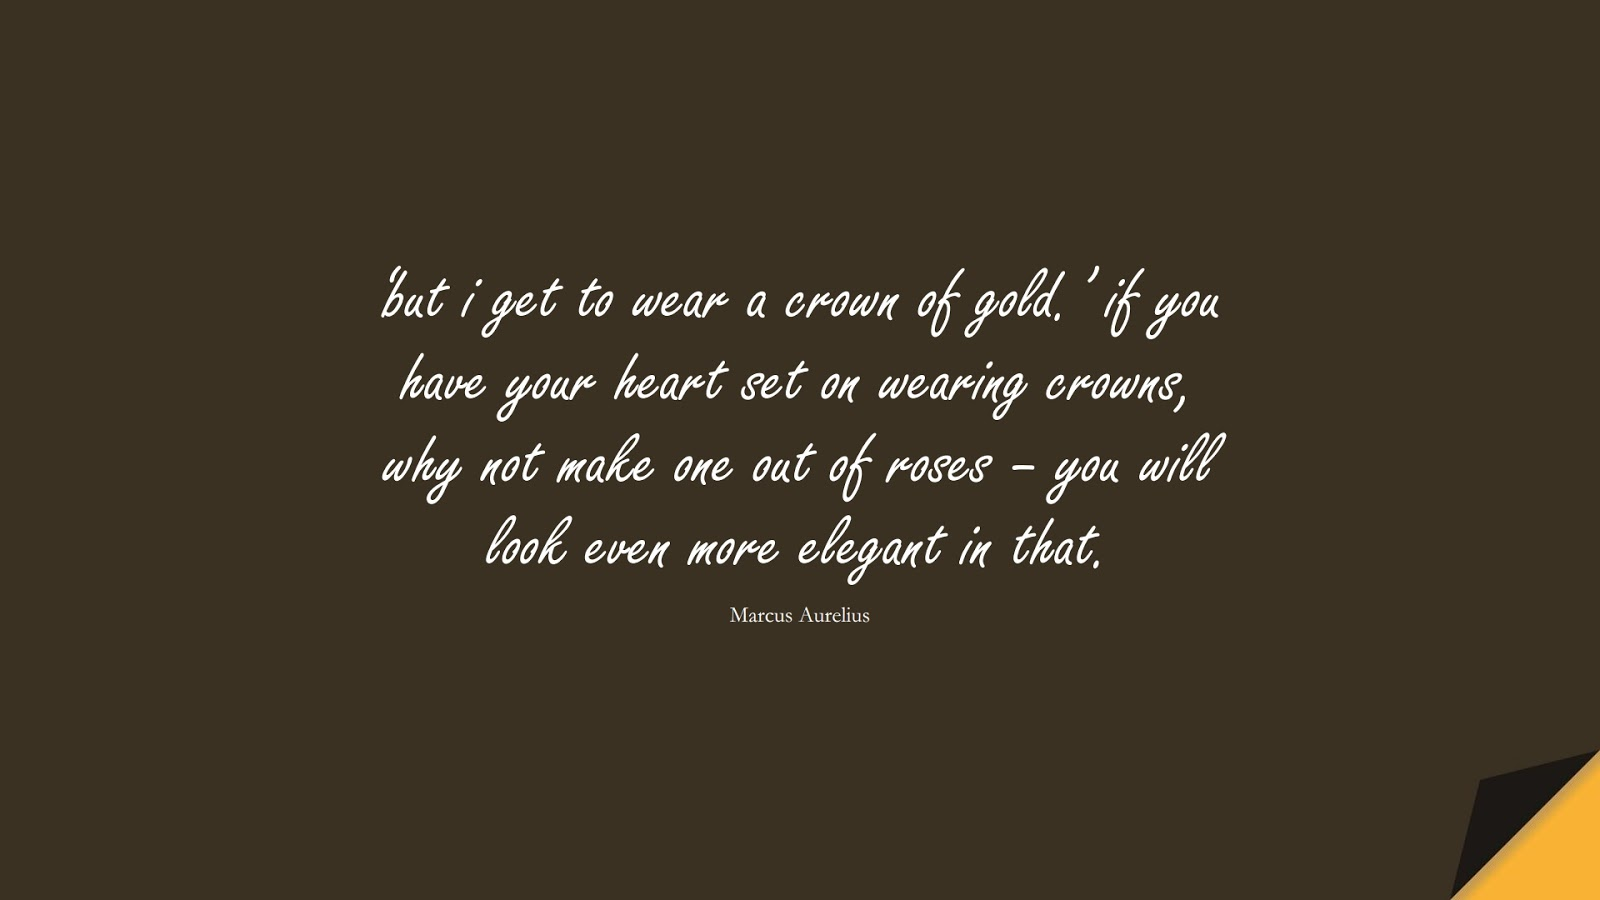 'but i get to wear a crown of gold.' if you have your heart set on wearing crowns, why not make one out of roses – you will look even more elegant in that. (Marcus Aurelius);  #MarcusAureliusQuotes